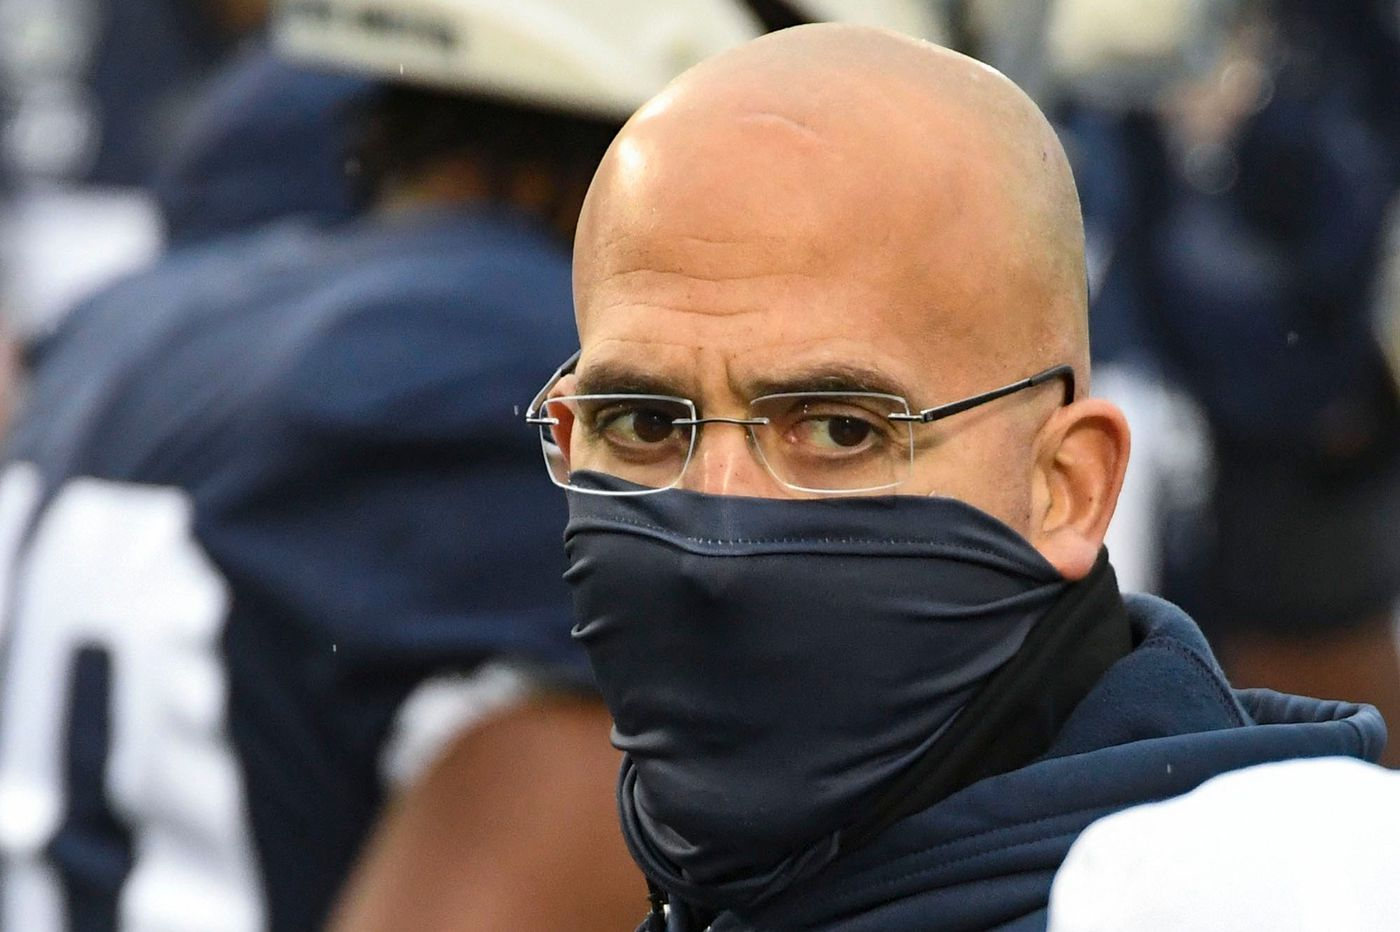 Penn State coach James Franklin says he has not lost his players, tries to keep them positive